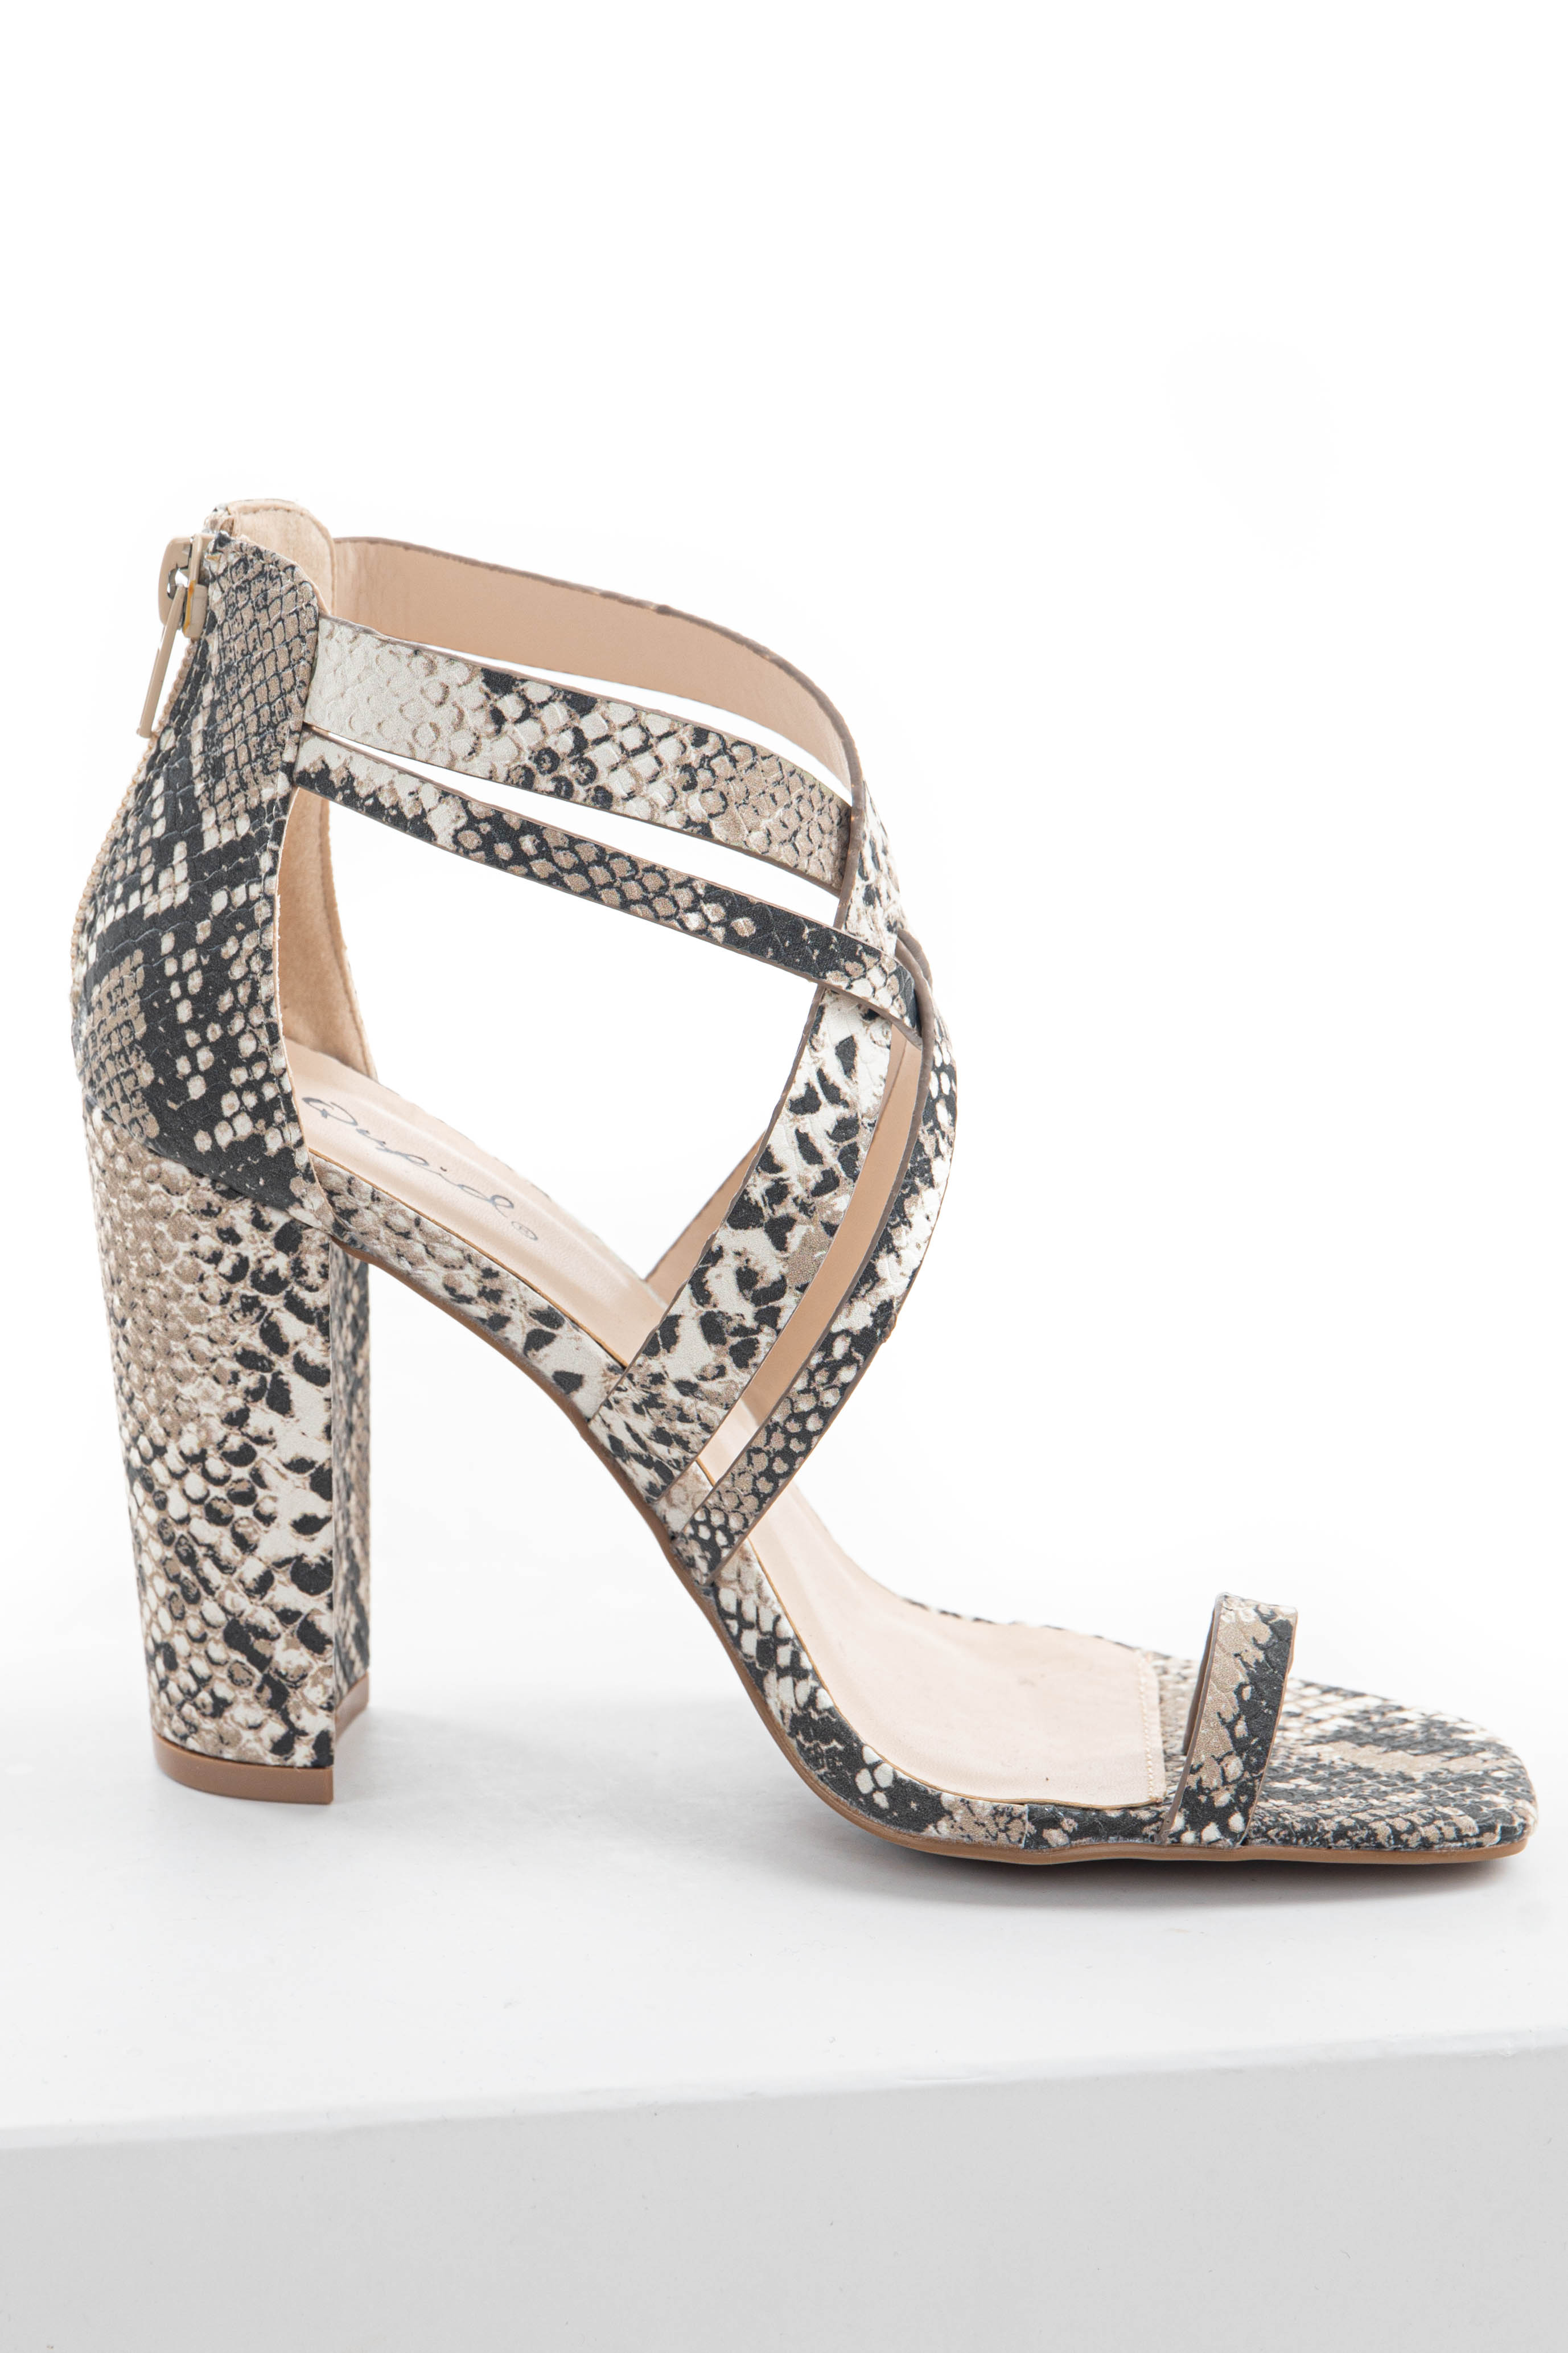 Latte Snake Print Strappy Heels with Toe StrapLatte Snake Print Strappy Heels with Toe Strap